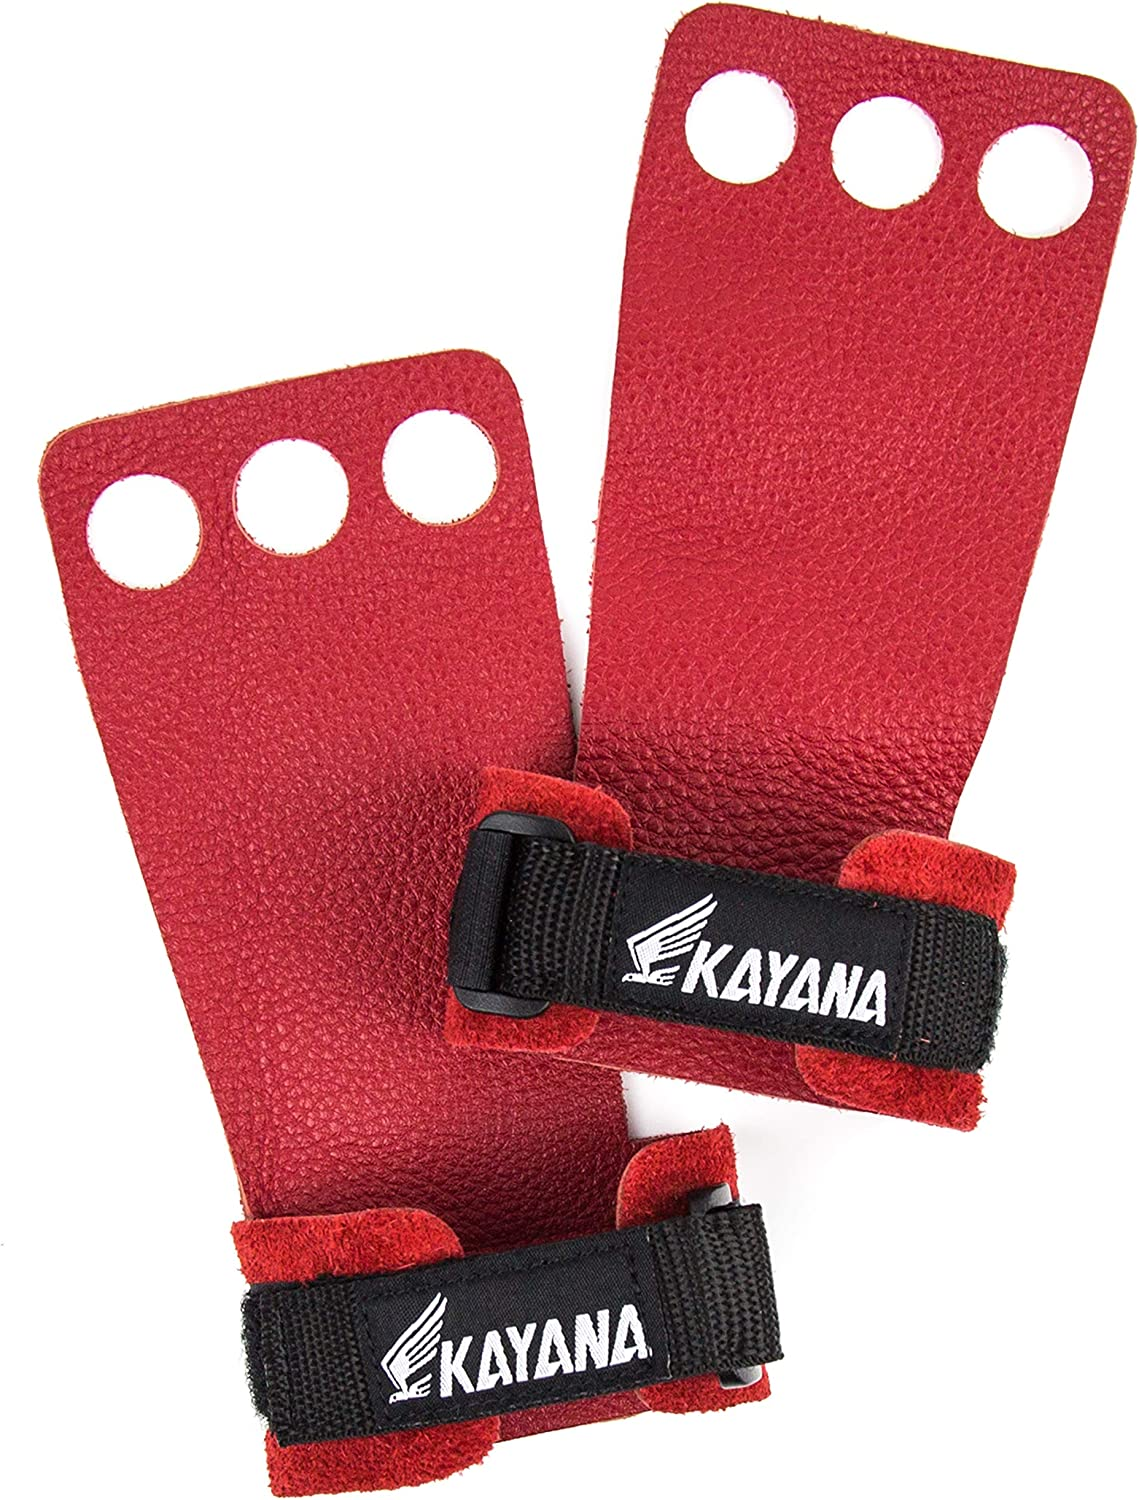 /& Exercise Chin ups Kettlebells Workout Weightlifting Palm Protection and Wrist Support for Cross Training Pull ups KAYANA 3 Hole Leather Gymnastics Hand Grips